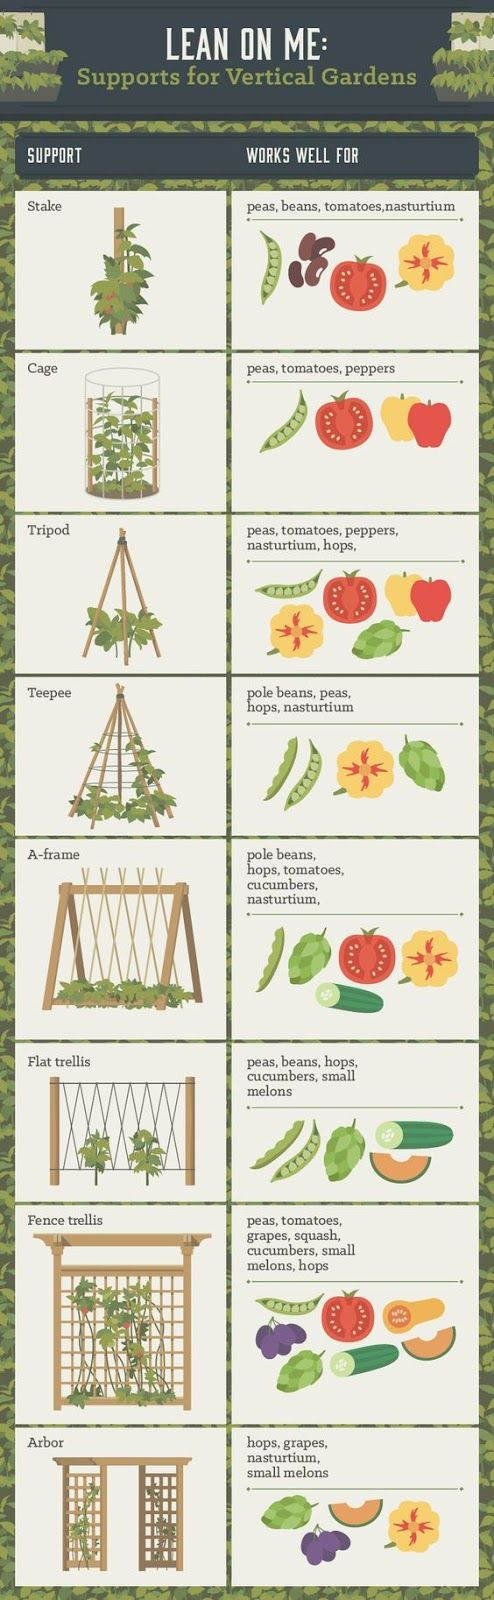 Raised vegetable garden layout 4x8 - Trellis Ideas For Vertical Gardening